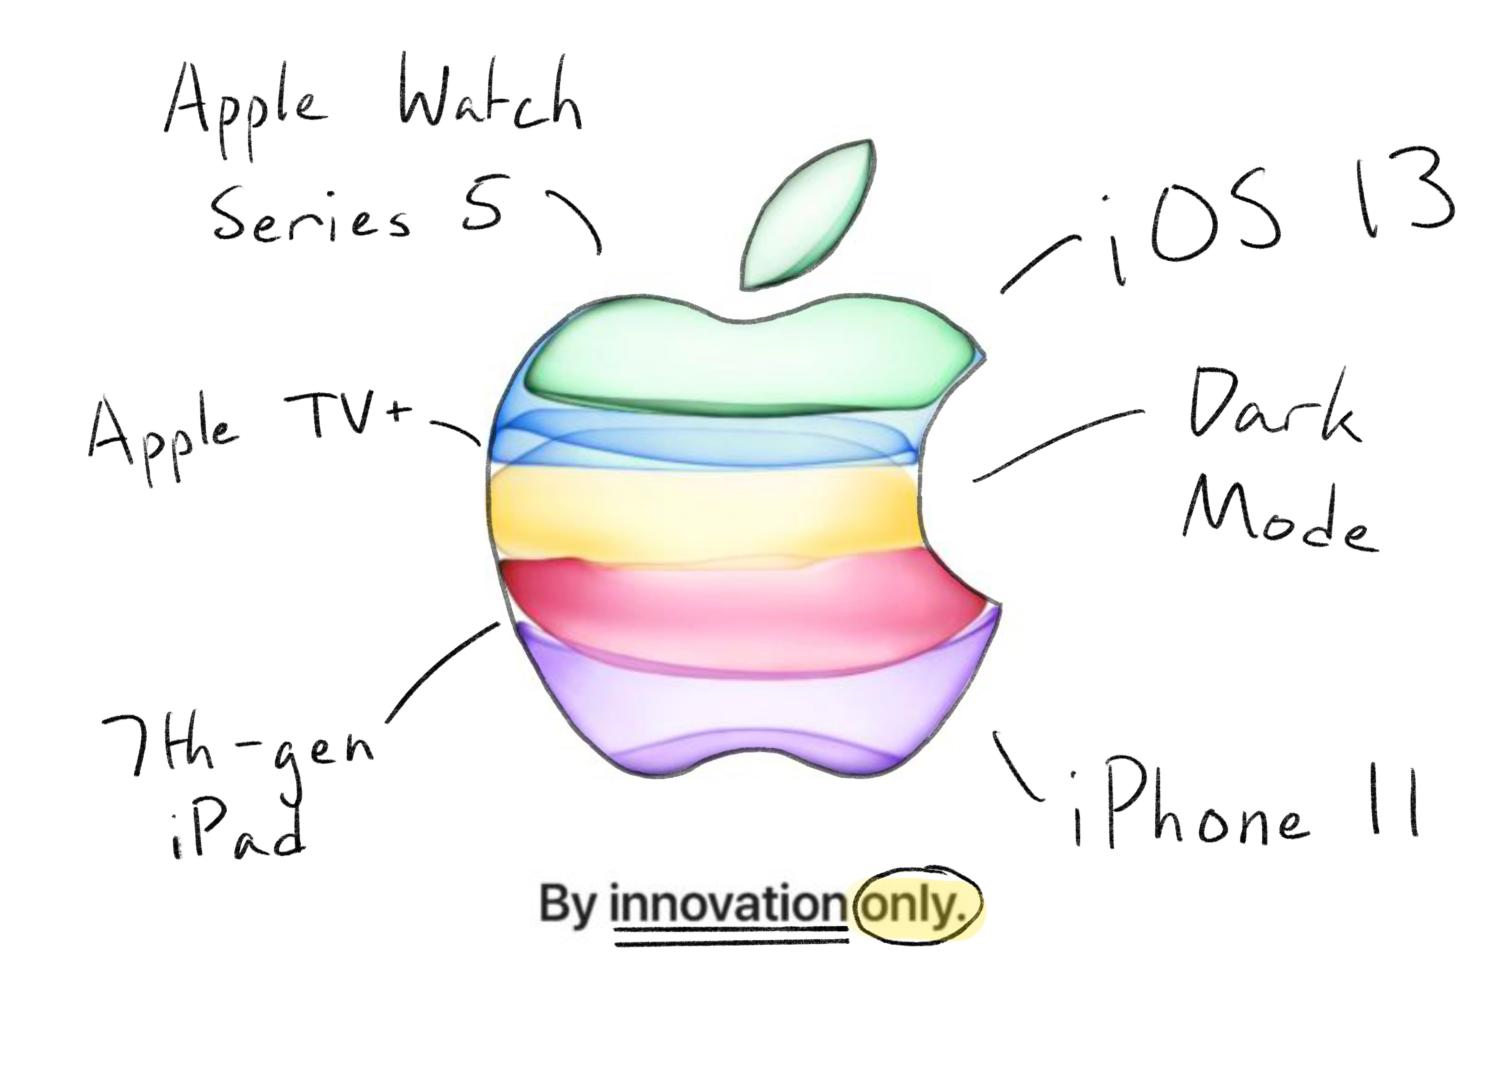 """Apple sent out invitations to the event two weeks before via the """"By innovation only"""" image."""